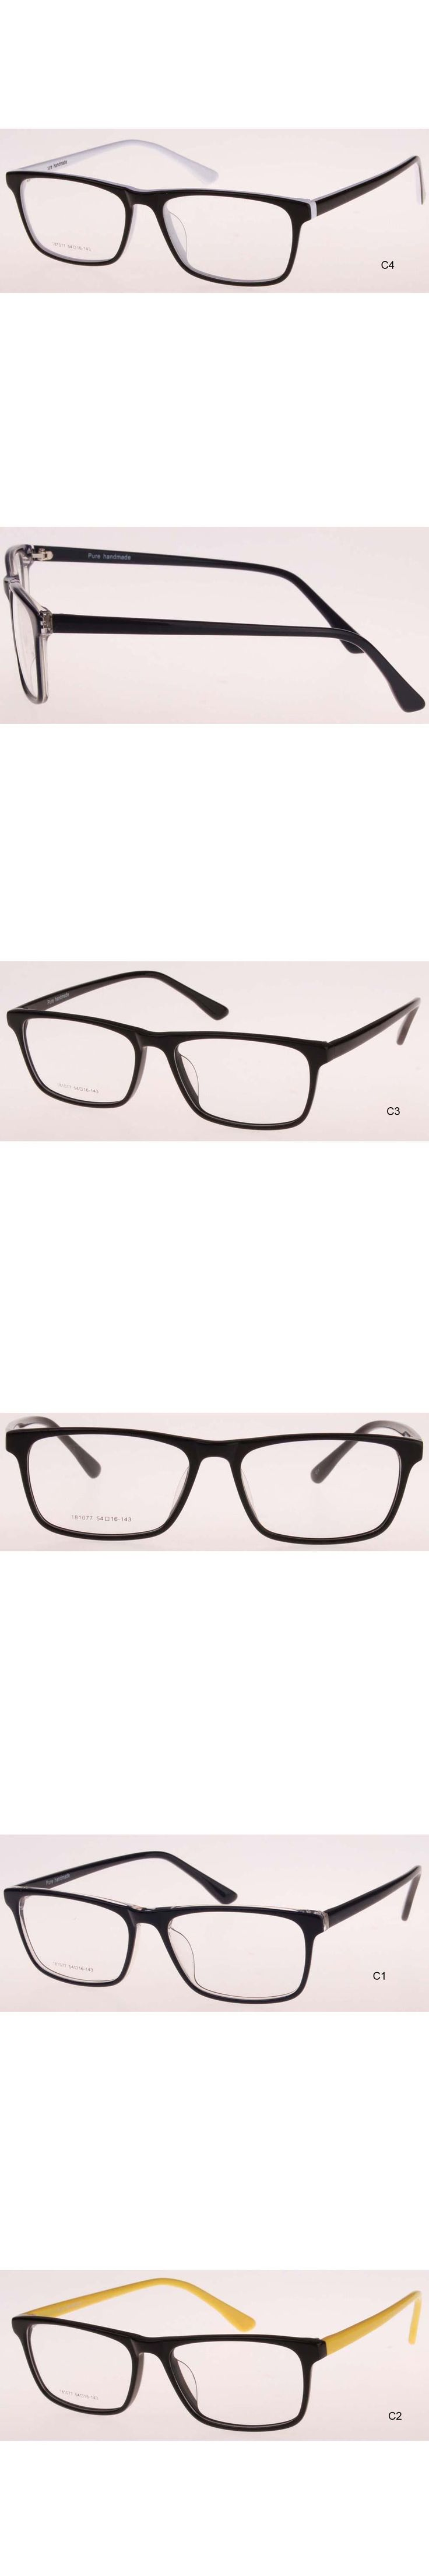 High Quality New Arrival Fashion Brand Women Handmade Optical Glasses Frames Opticians Eyeglasses Acetate Frames Spectacle Frame